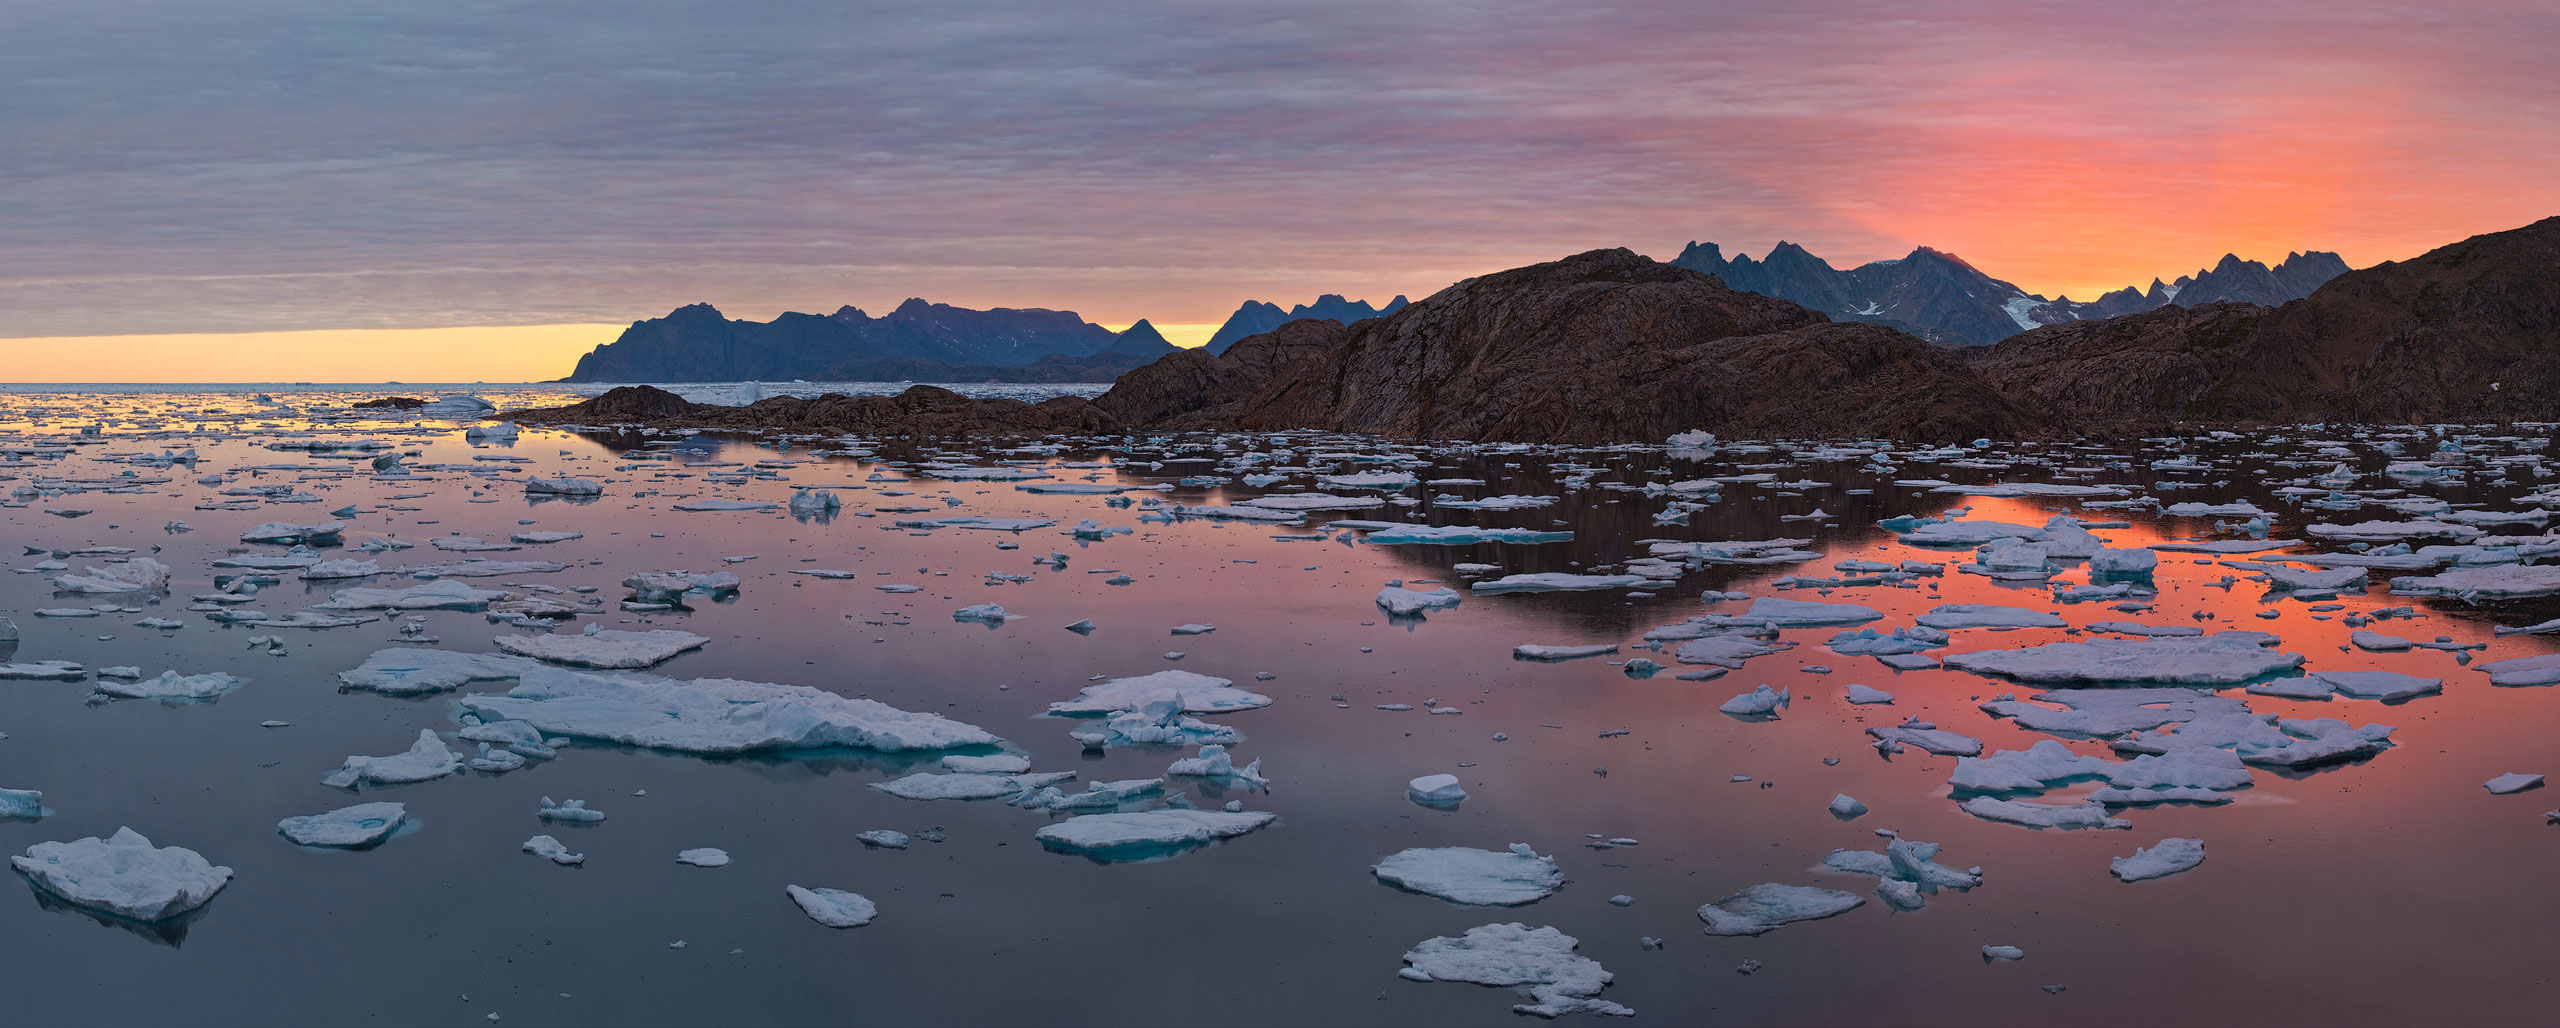 Evening Chime. View from Kulusuk over Torsuut Tunoq sound toward Angmagssalik island at sunset. Southeastern Greenland. - Greenland-Iceberg-Factory-1 - Mike Reyfman Photography